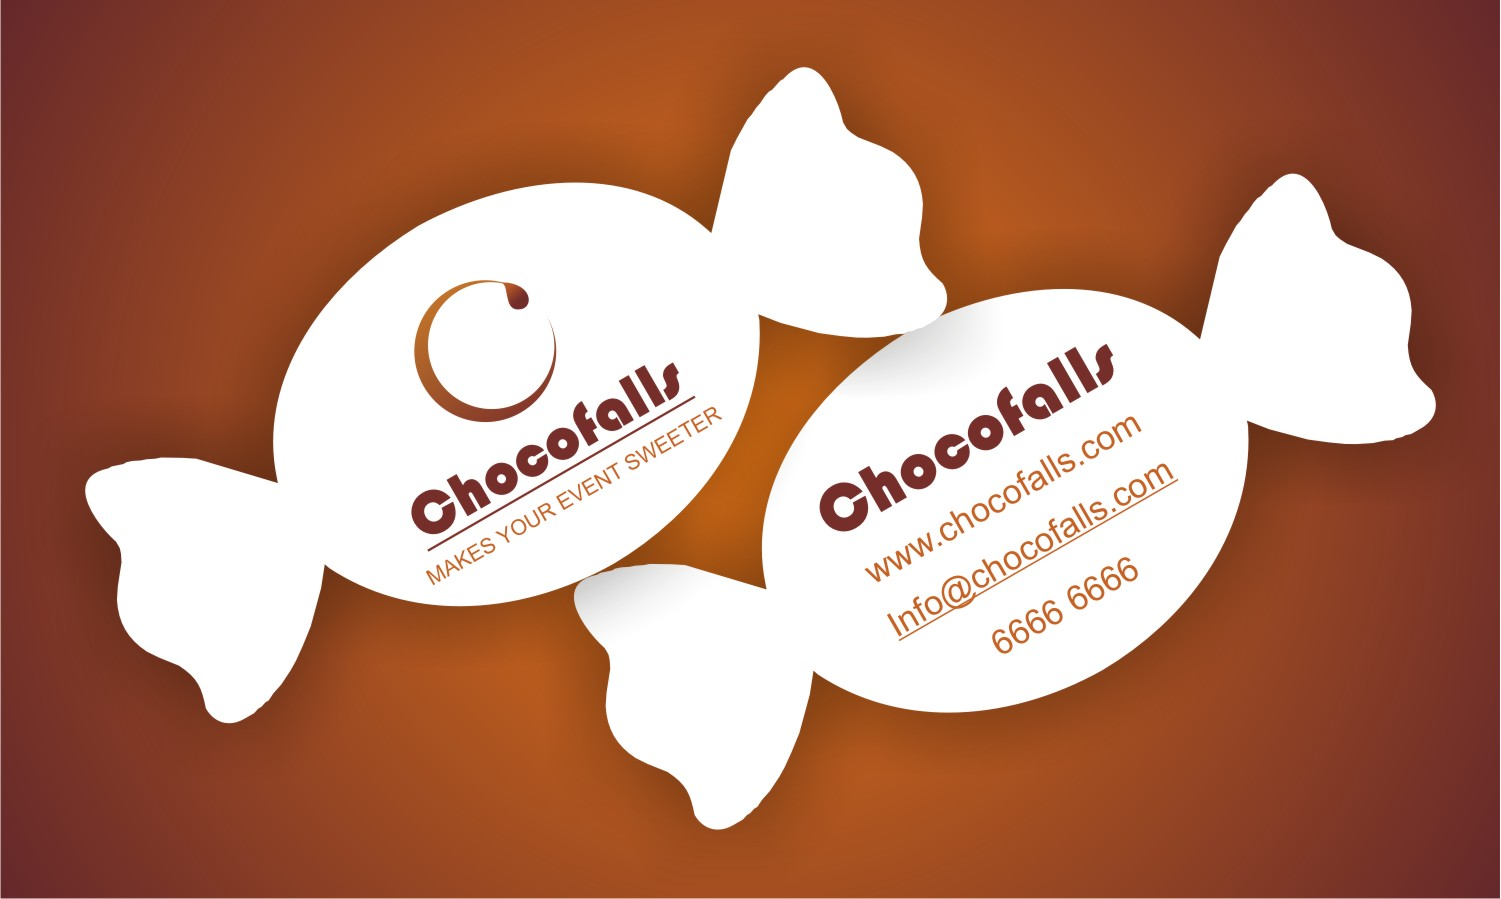 Unique business card for chocolate company harshini creative graphics this is an unique business card for all chocolate related companies colourmoves Gallery